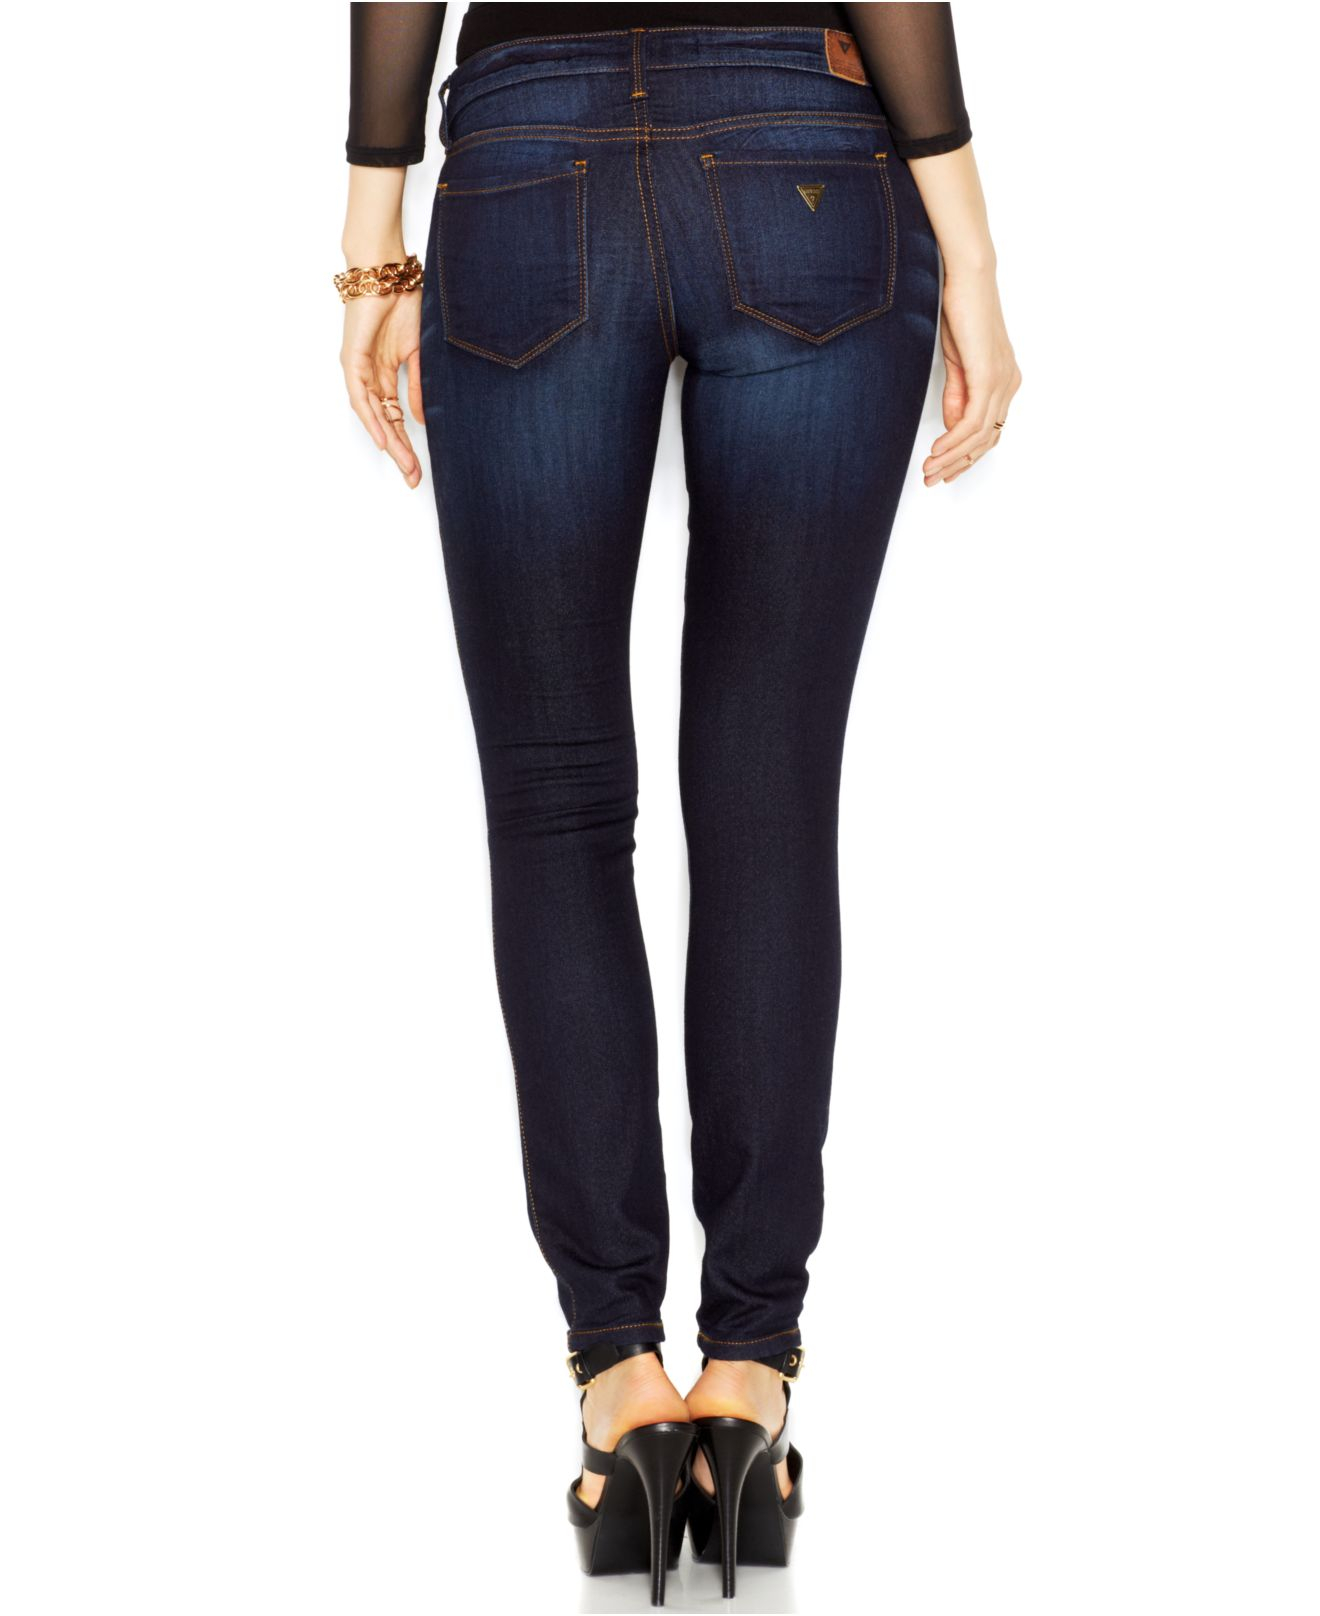 Dark In Wash Rise Low Jeans Blue Skinny Denk Lyst Guess PYaUAA